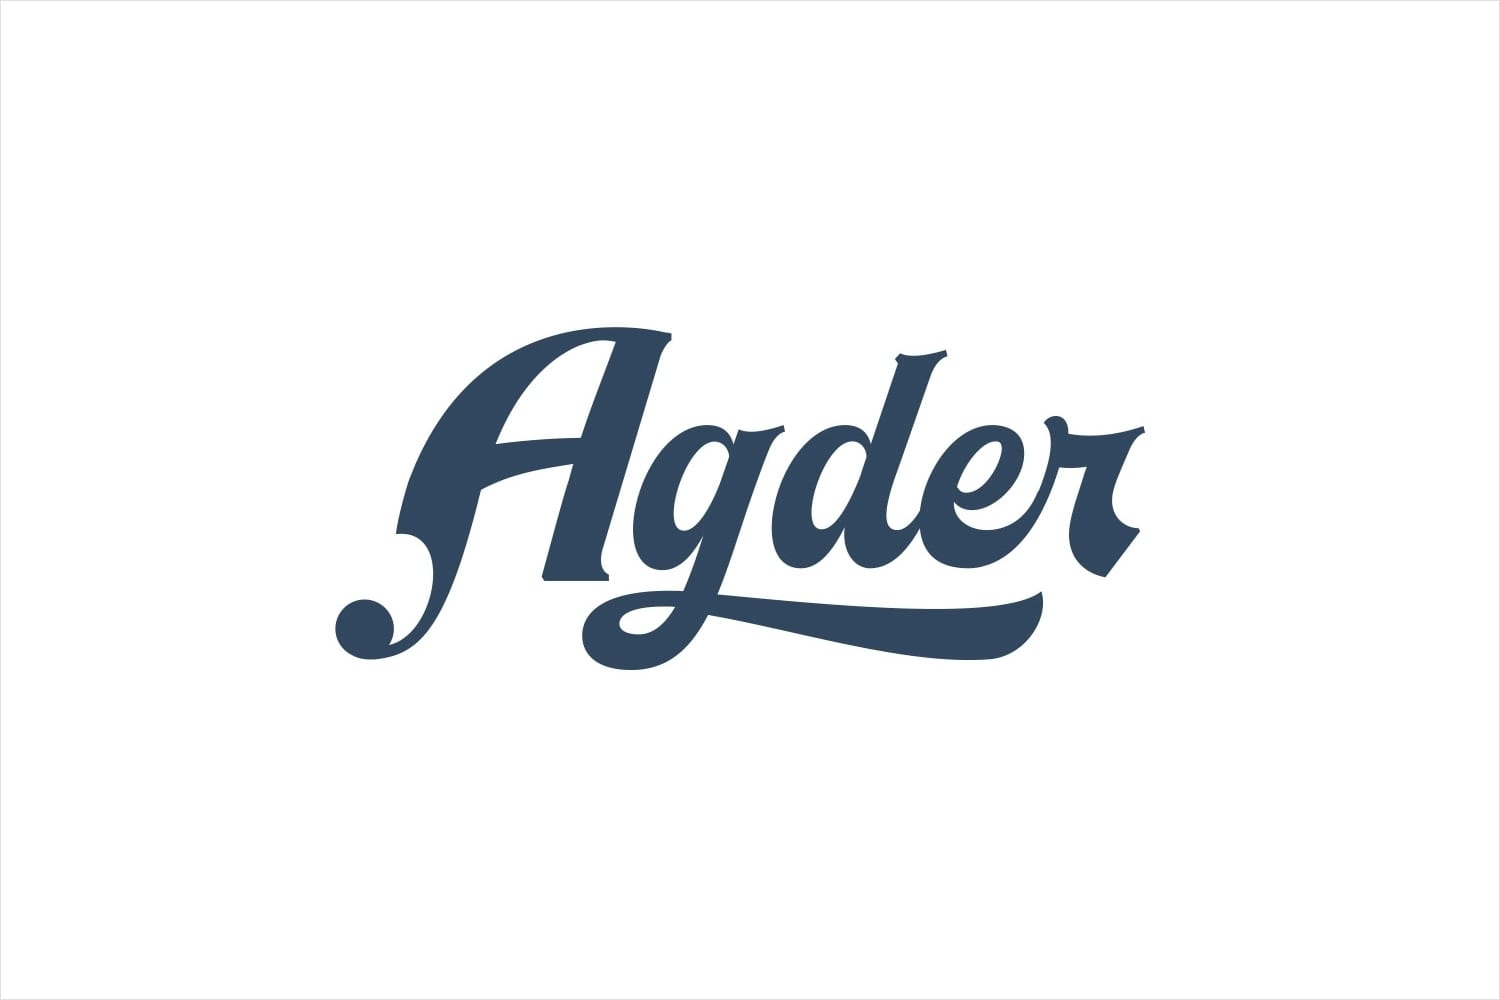 00 Agder Bryggeri Local Craft Beer Branding Logotype Frank Norway BPO - Ach, tie obaly – Agder Bryggeri by Frank